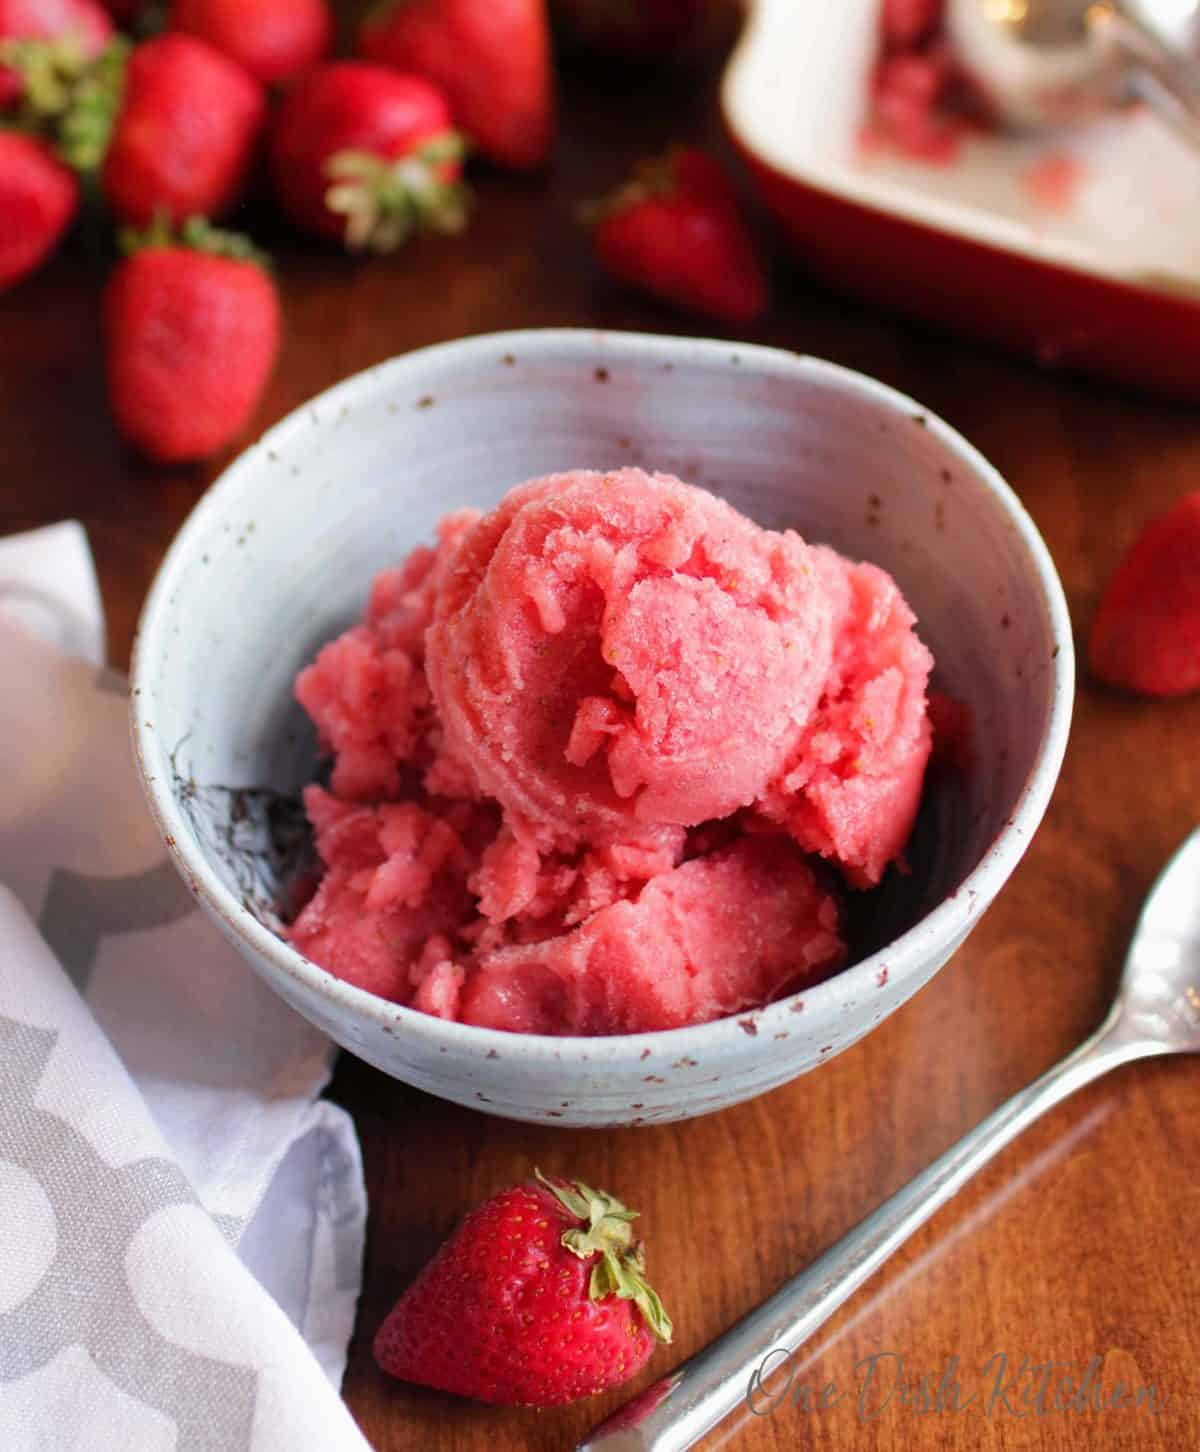 an overhead view of a bowl of strawberry sorbet next to strawberries scattered around a table.